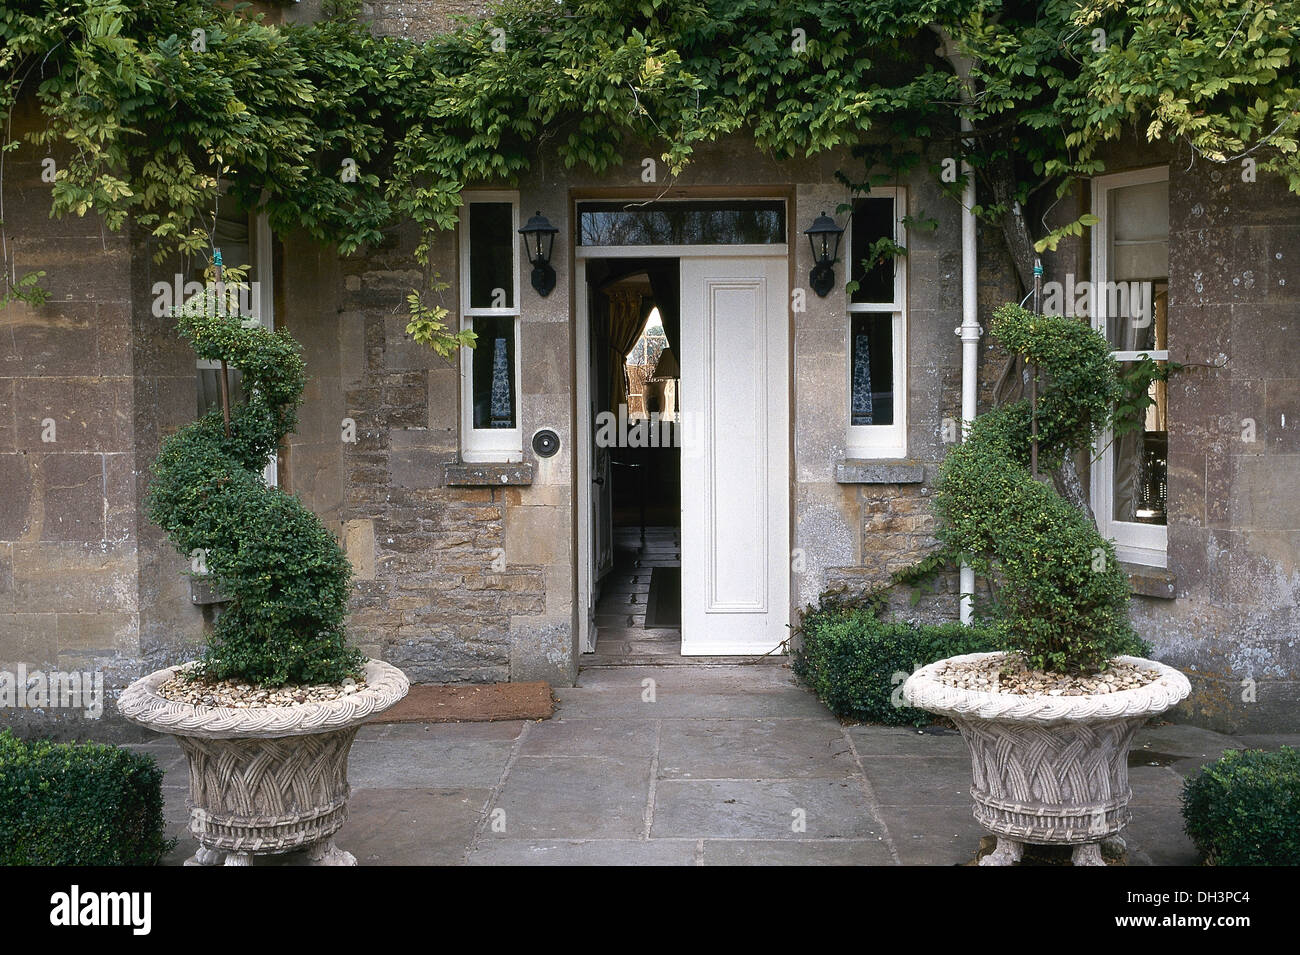 Spiral Topiary Box In Stone Urns In Front Of House With Open Front Door